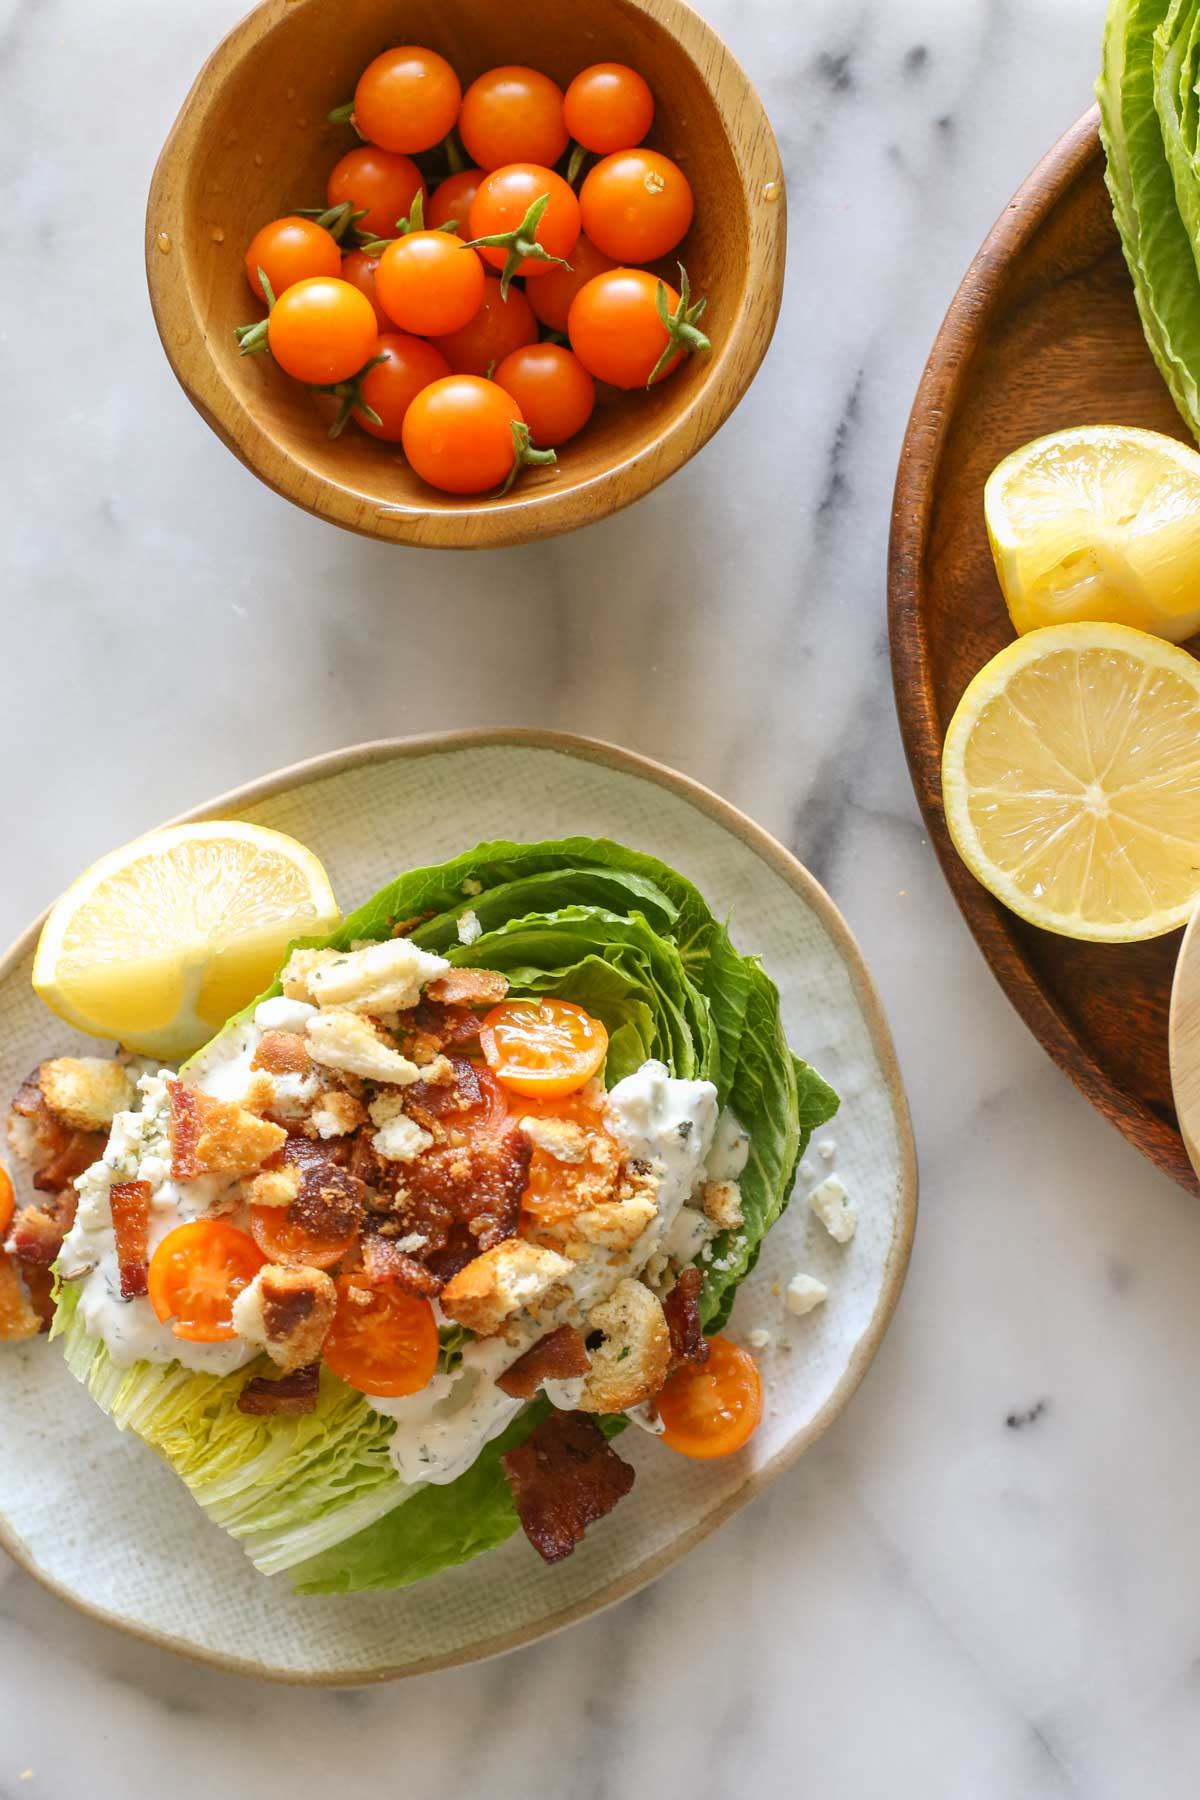 Overhead shot of a Wedge Style BLT Salad on a plate with a lemon wedge, next to a wood bowl of Sungold tomatoes and a wood platter with lemon wedges, all on a marble background.